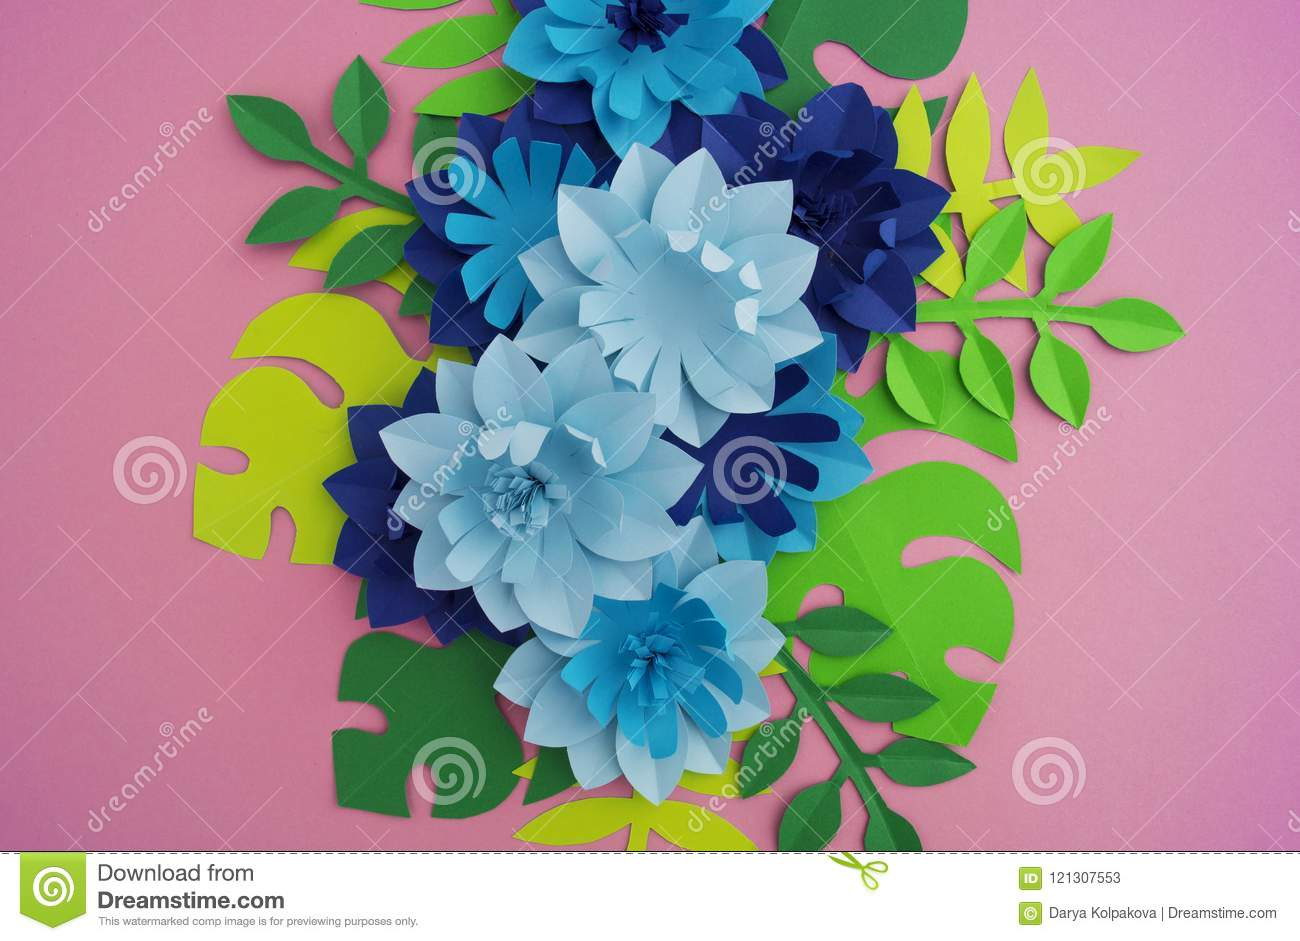 Paper Craft Flower Decoration Concept Flowers And Leaves Made Of